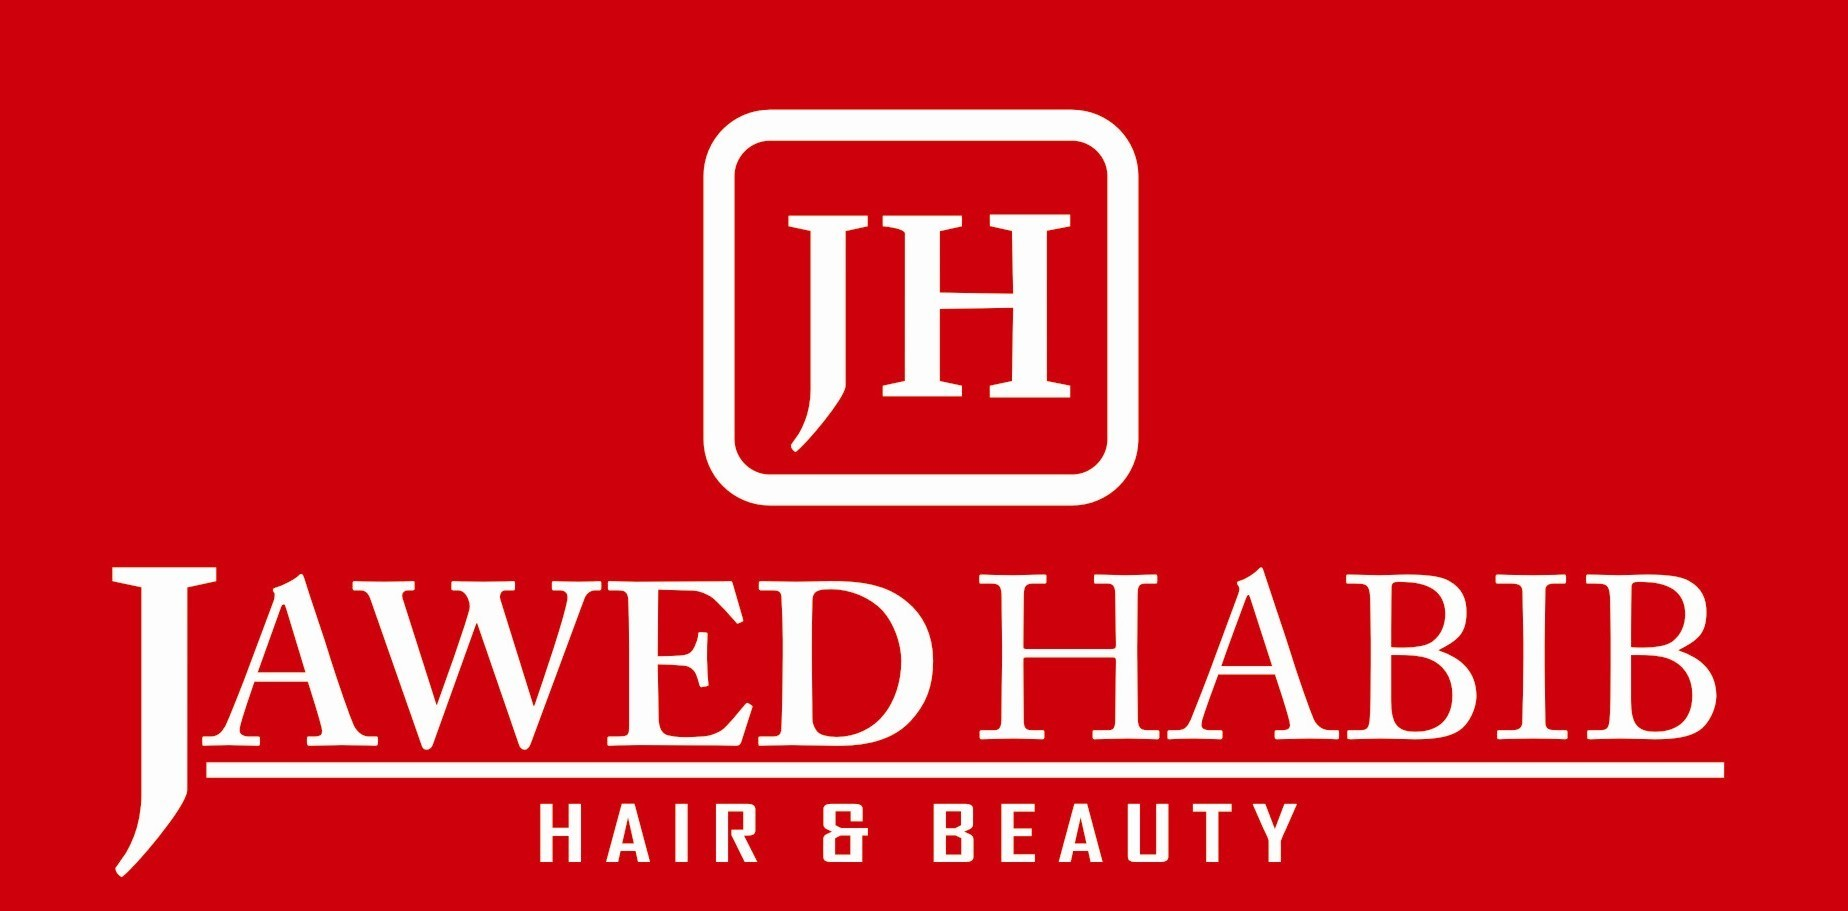 Jawed Habib Hair & Beauty Salons - Civil Line - Allahabad Image